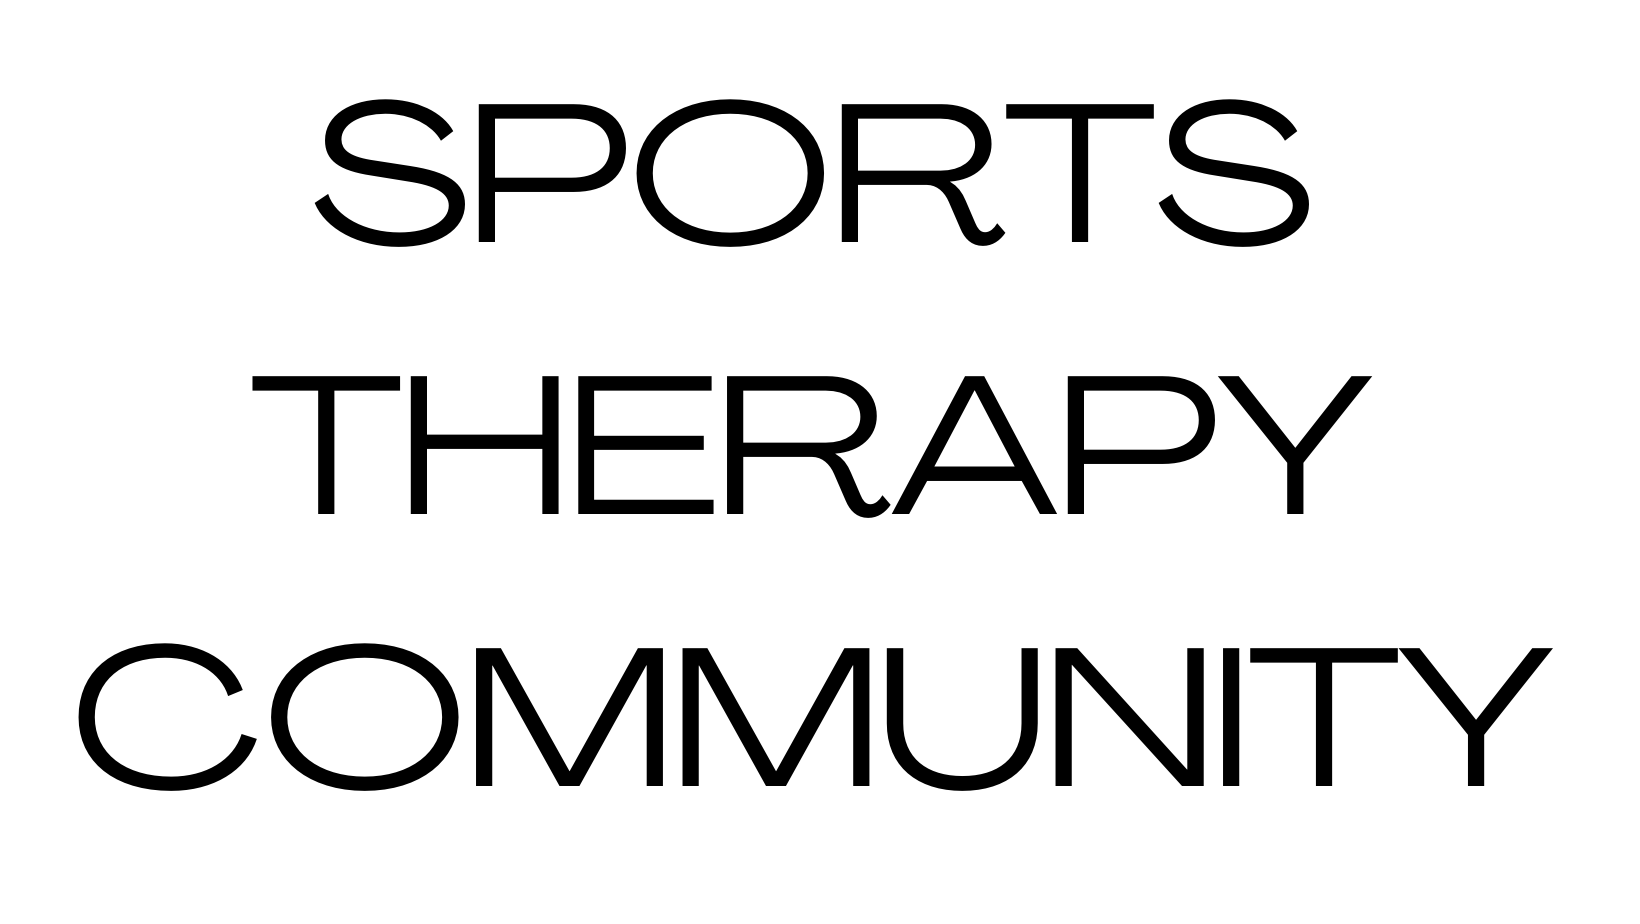 sports therapy community